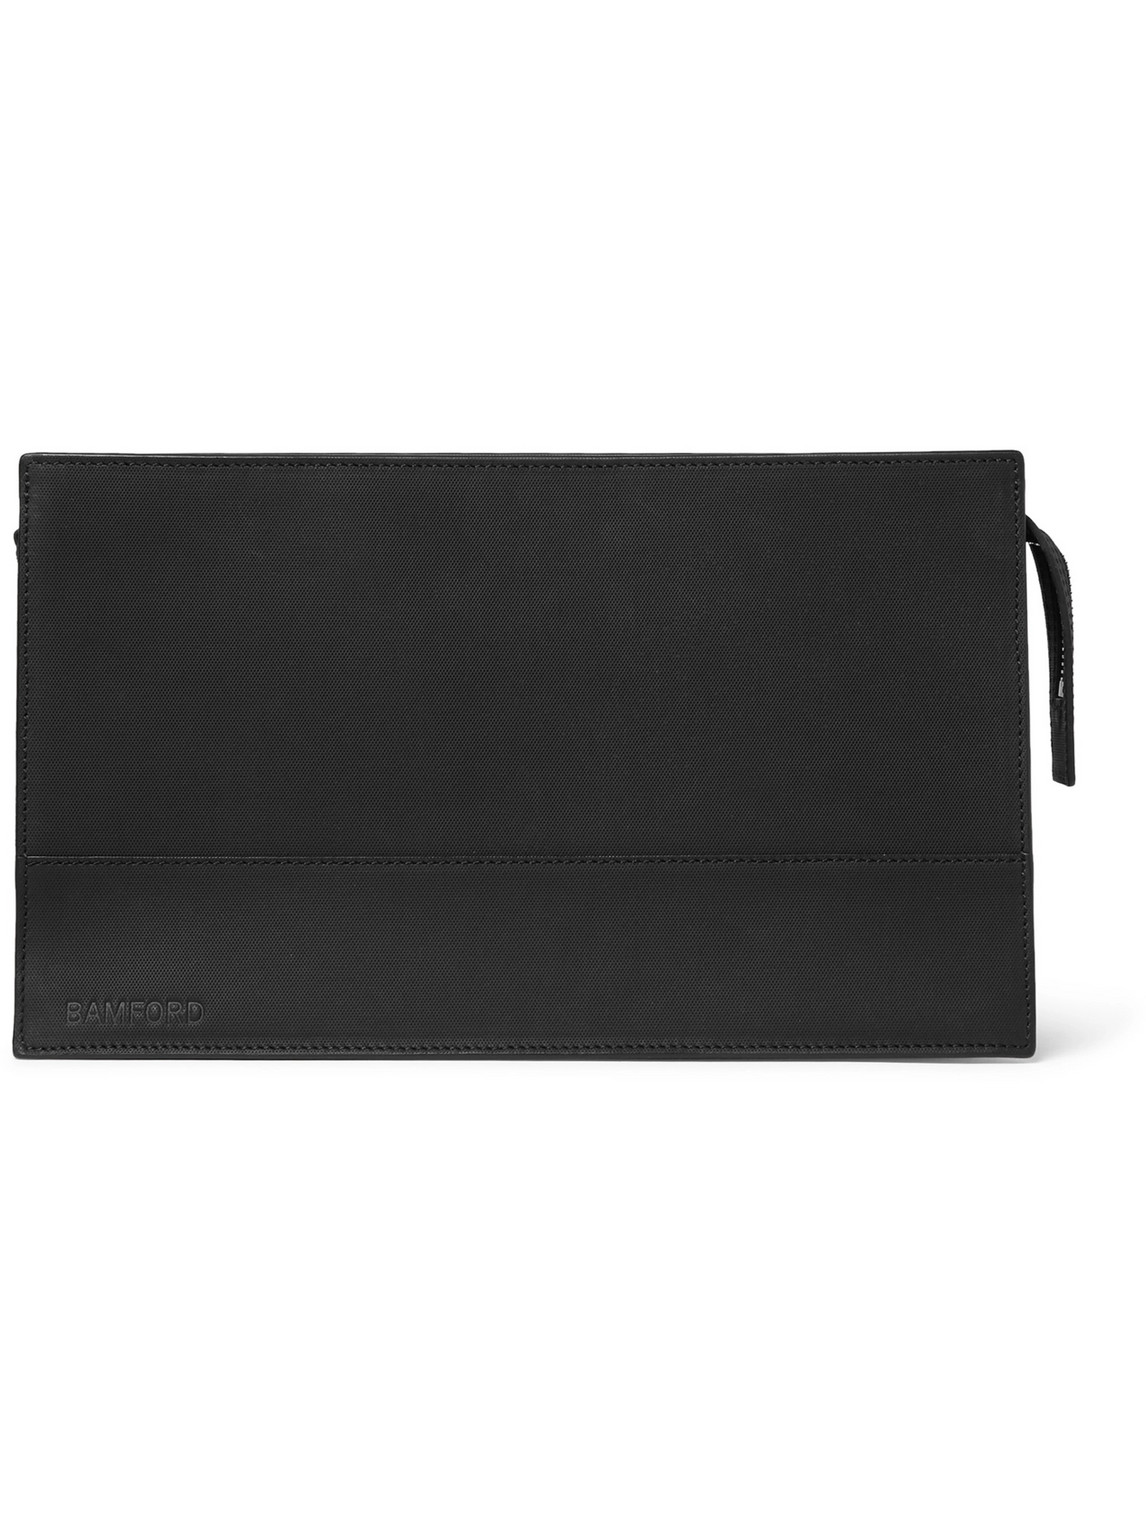 bamford grooming department - perforated leather wash bag - men - black - one size